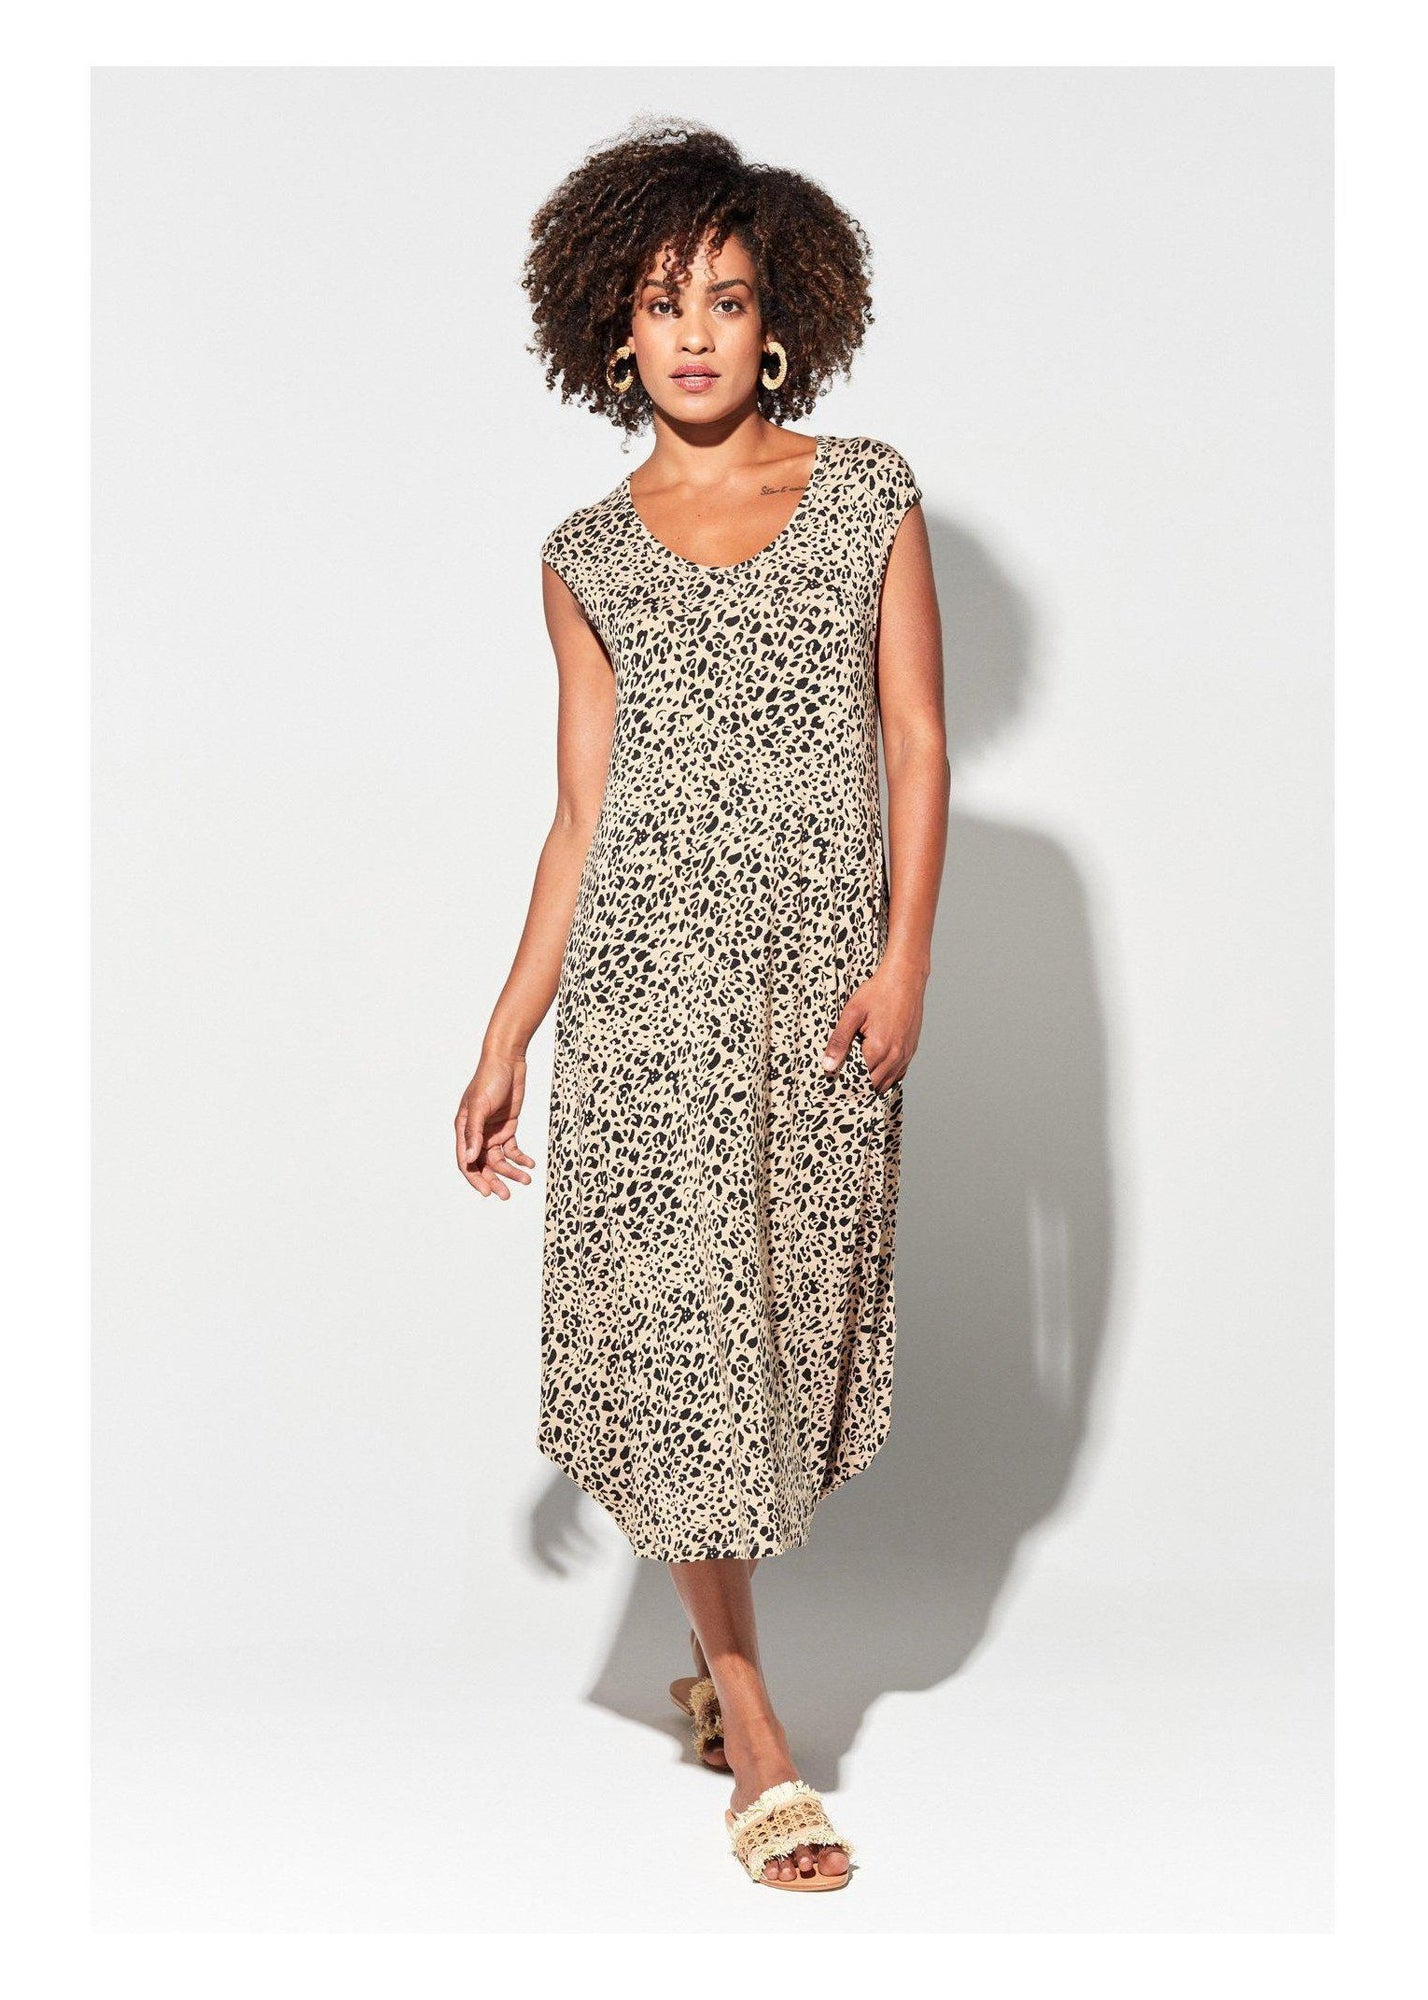 Lorde Maxi Dress-Unclassified-Lou Lou Australia